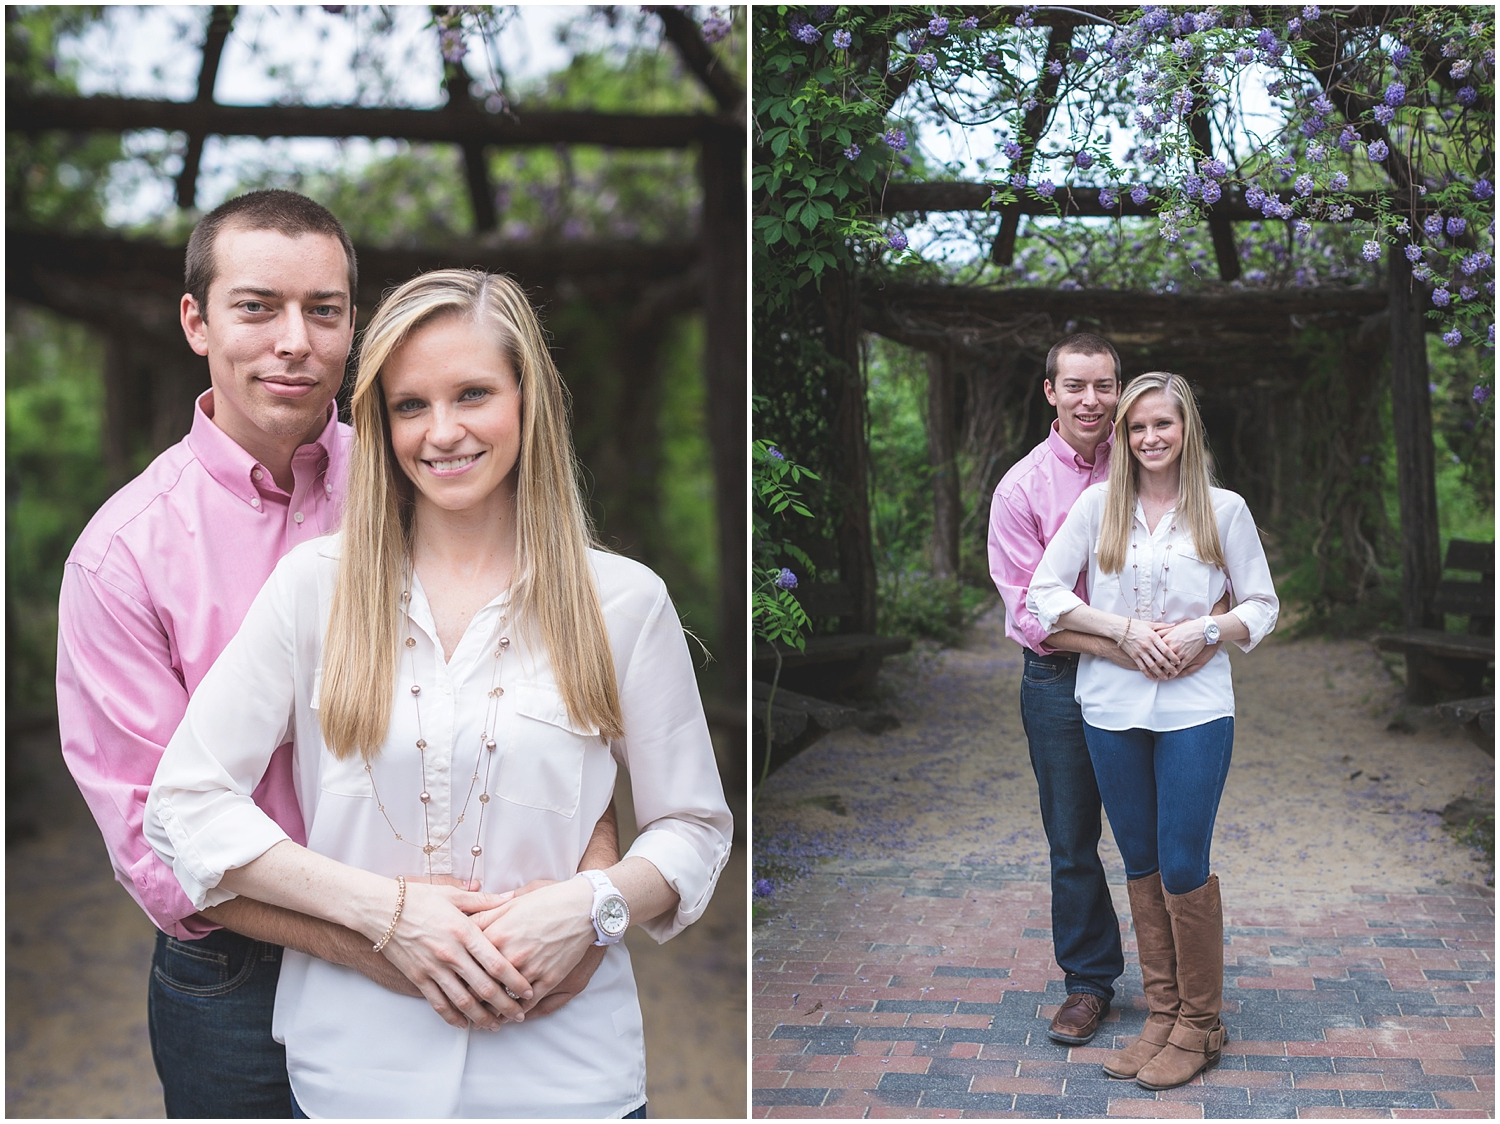 Coker Arboretum UNC Campus Chapel Hill North Carolina Engagement Photographer-0012.jpg